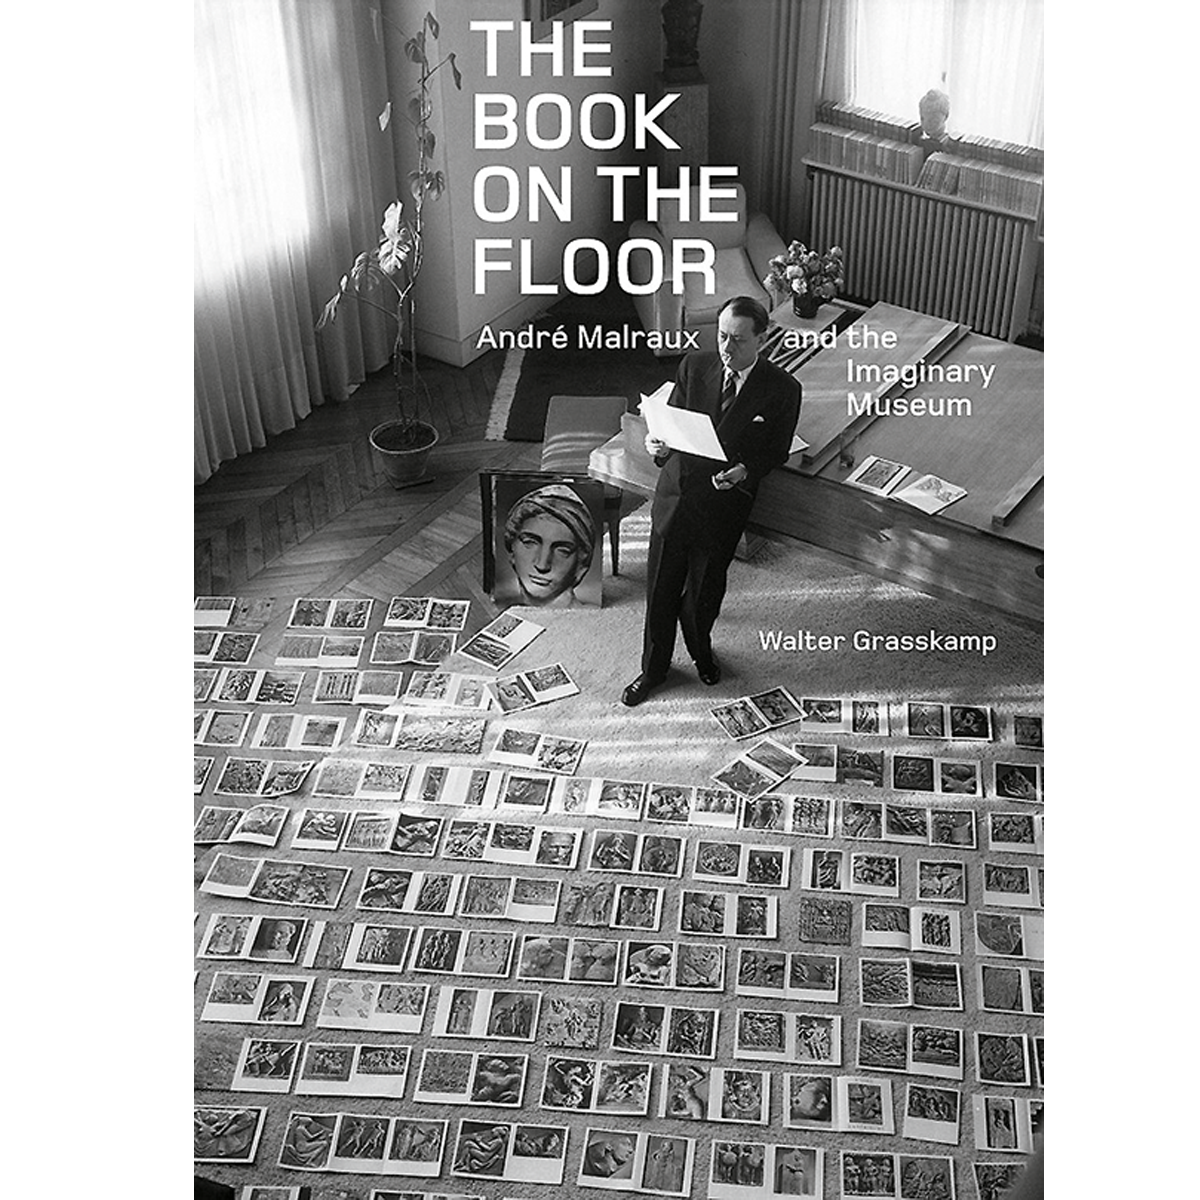 The Book on the Floor